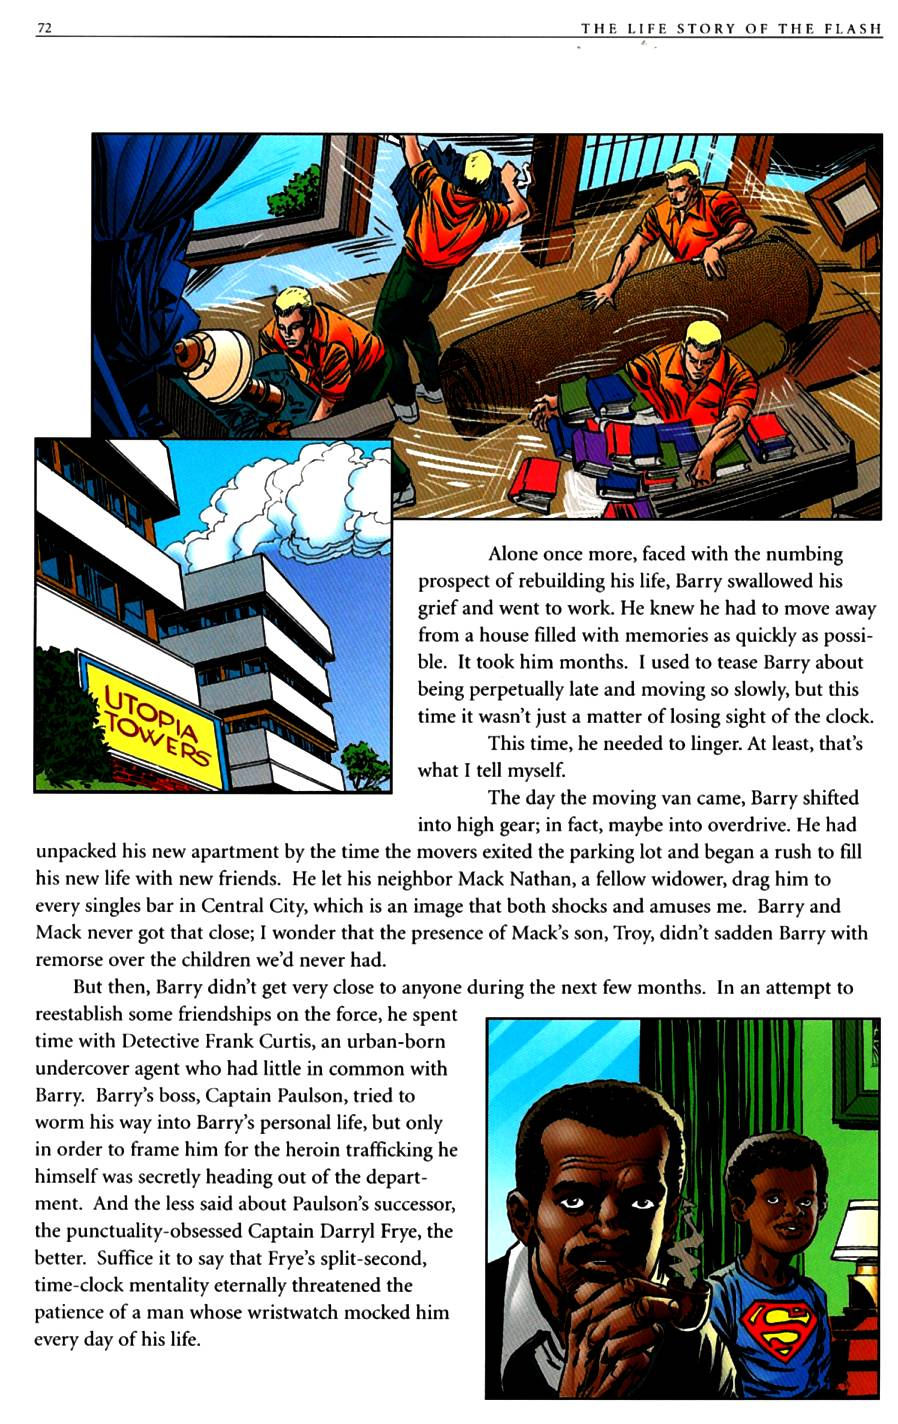 Read online The Life Story of the Flash comic -  Issue # Full - 74